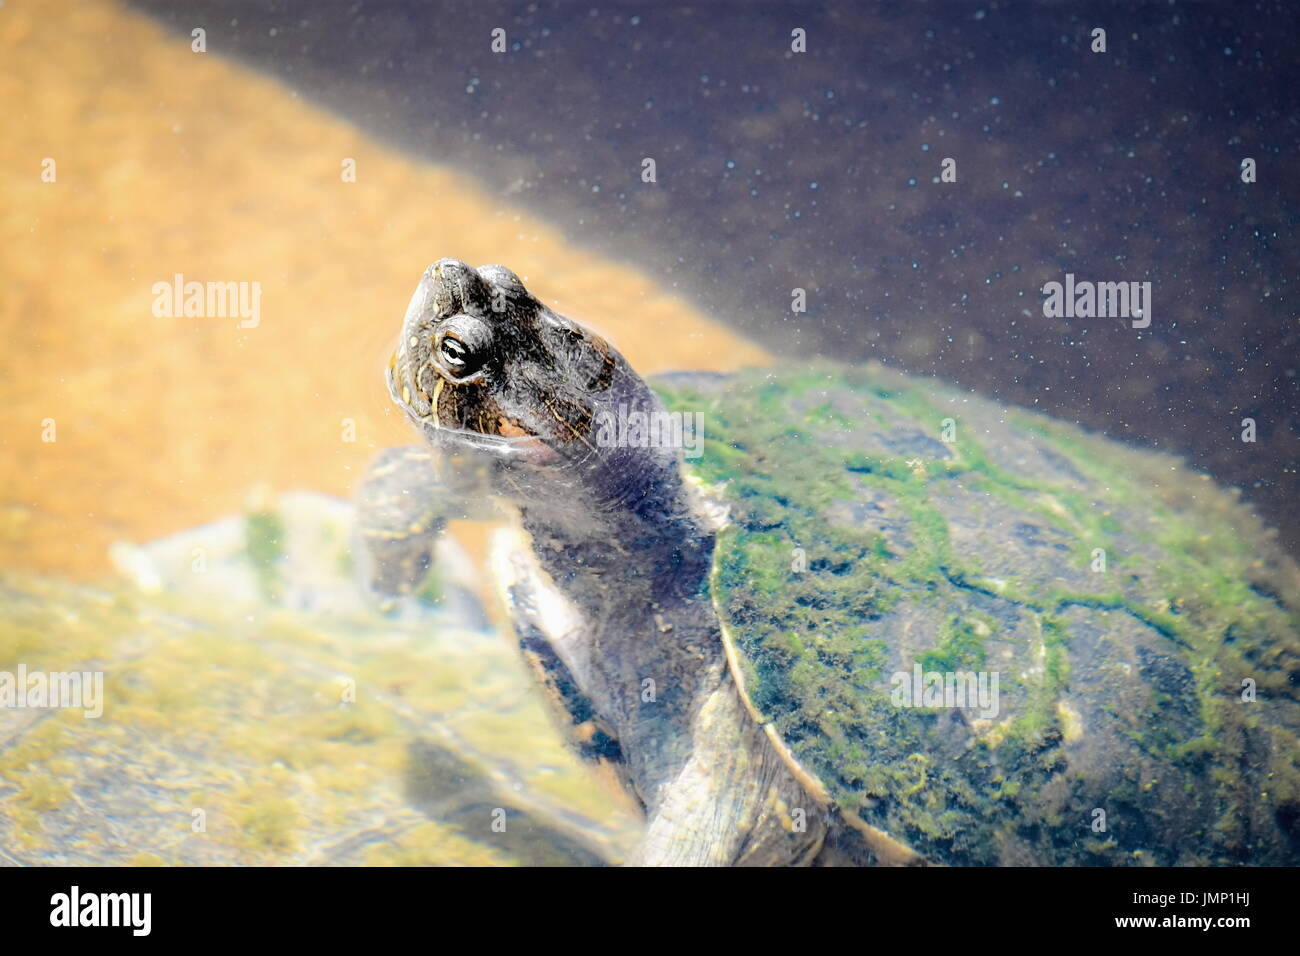 Close up of a turtle with his head out of the water - Stock Image